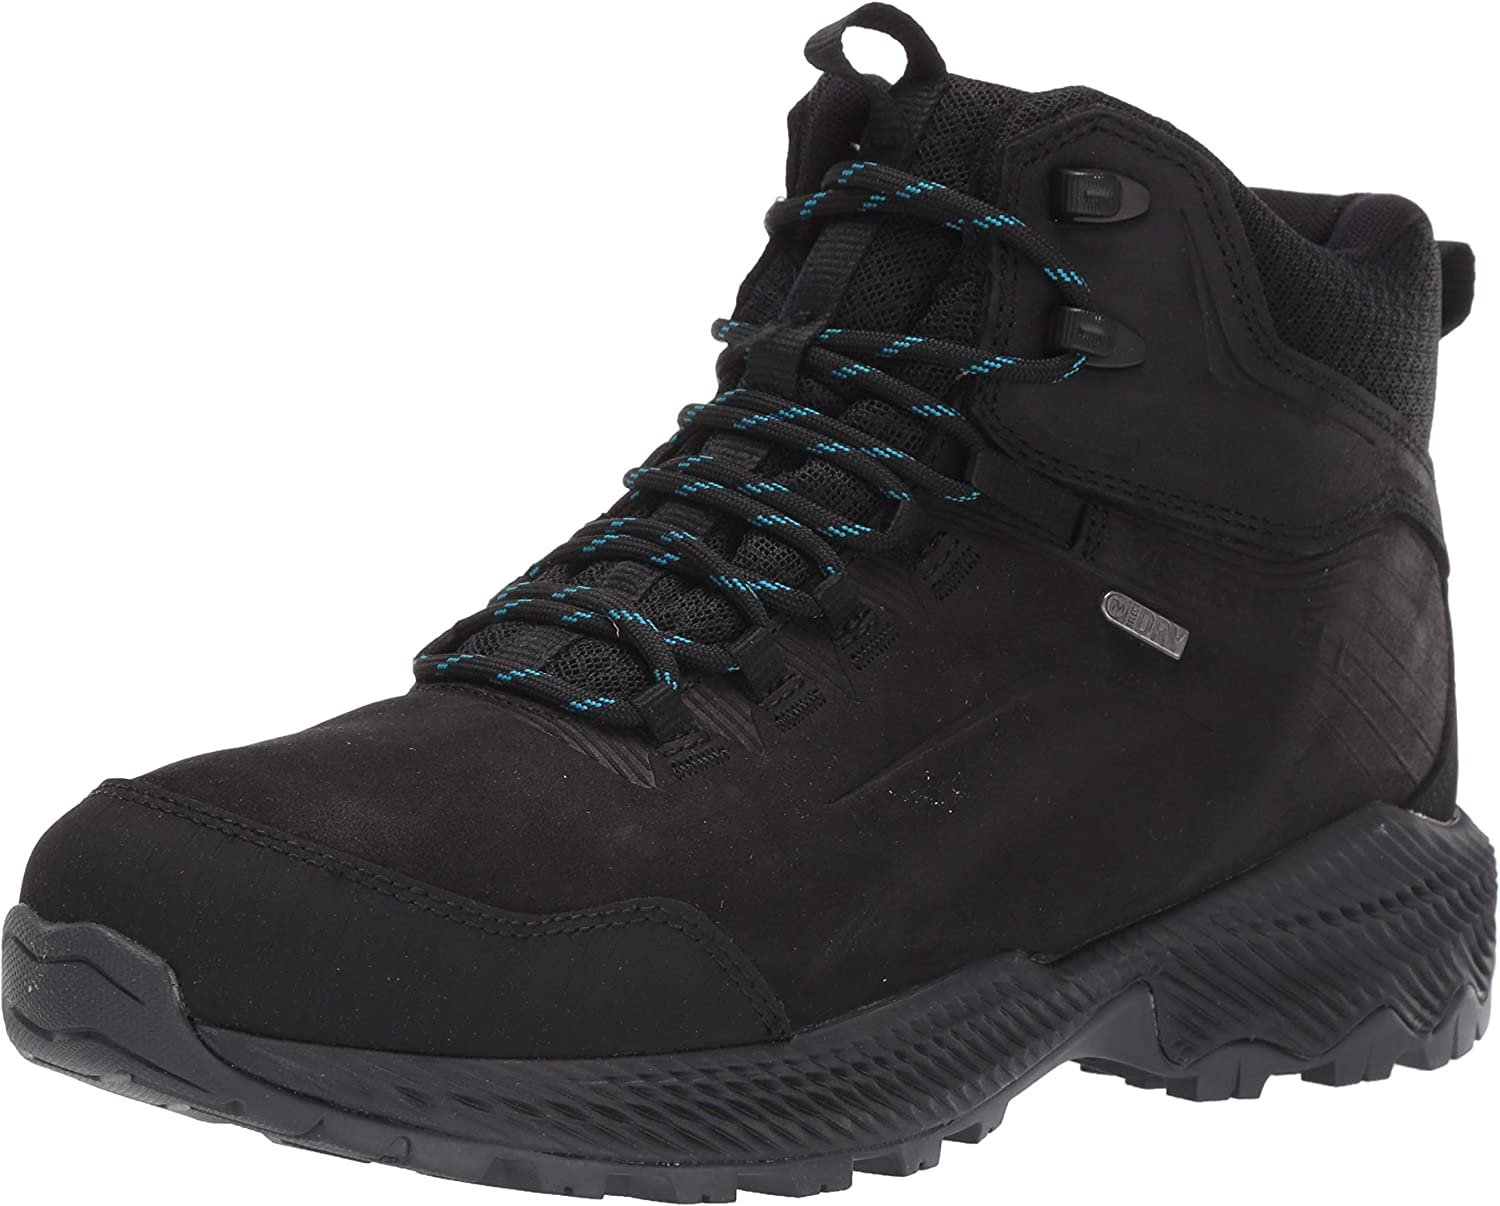 Forestbound Mid Waterproof Hiking Shoe